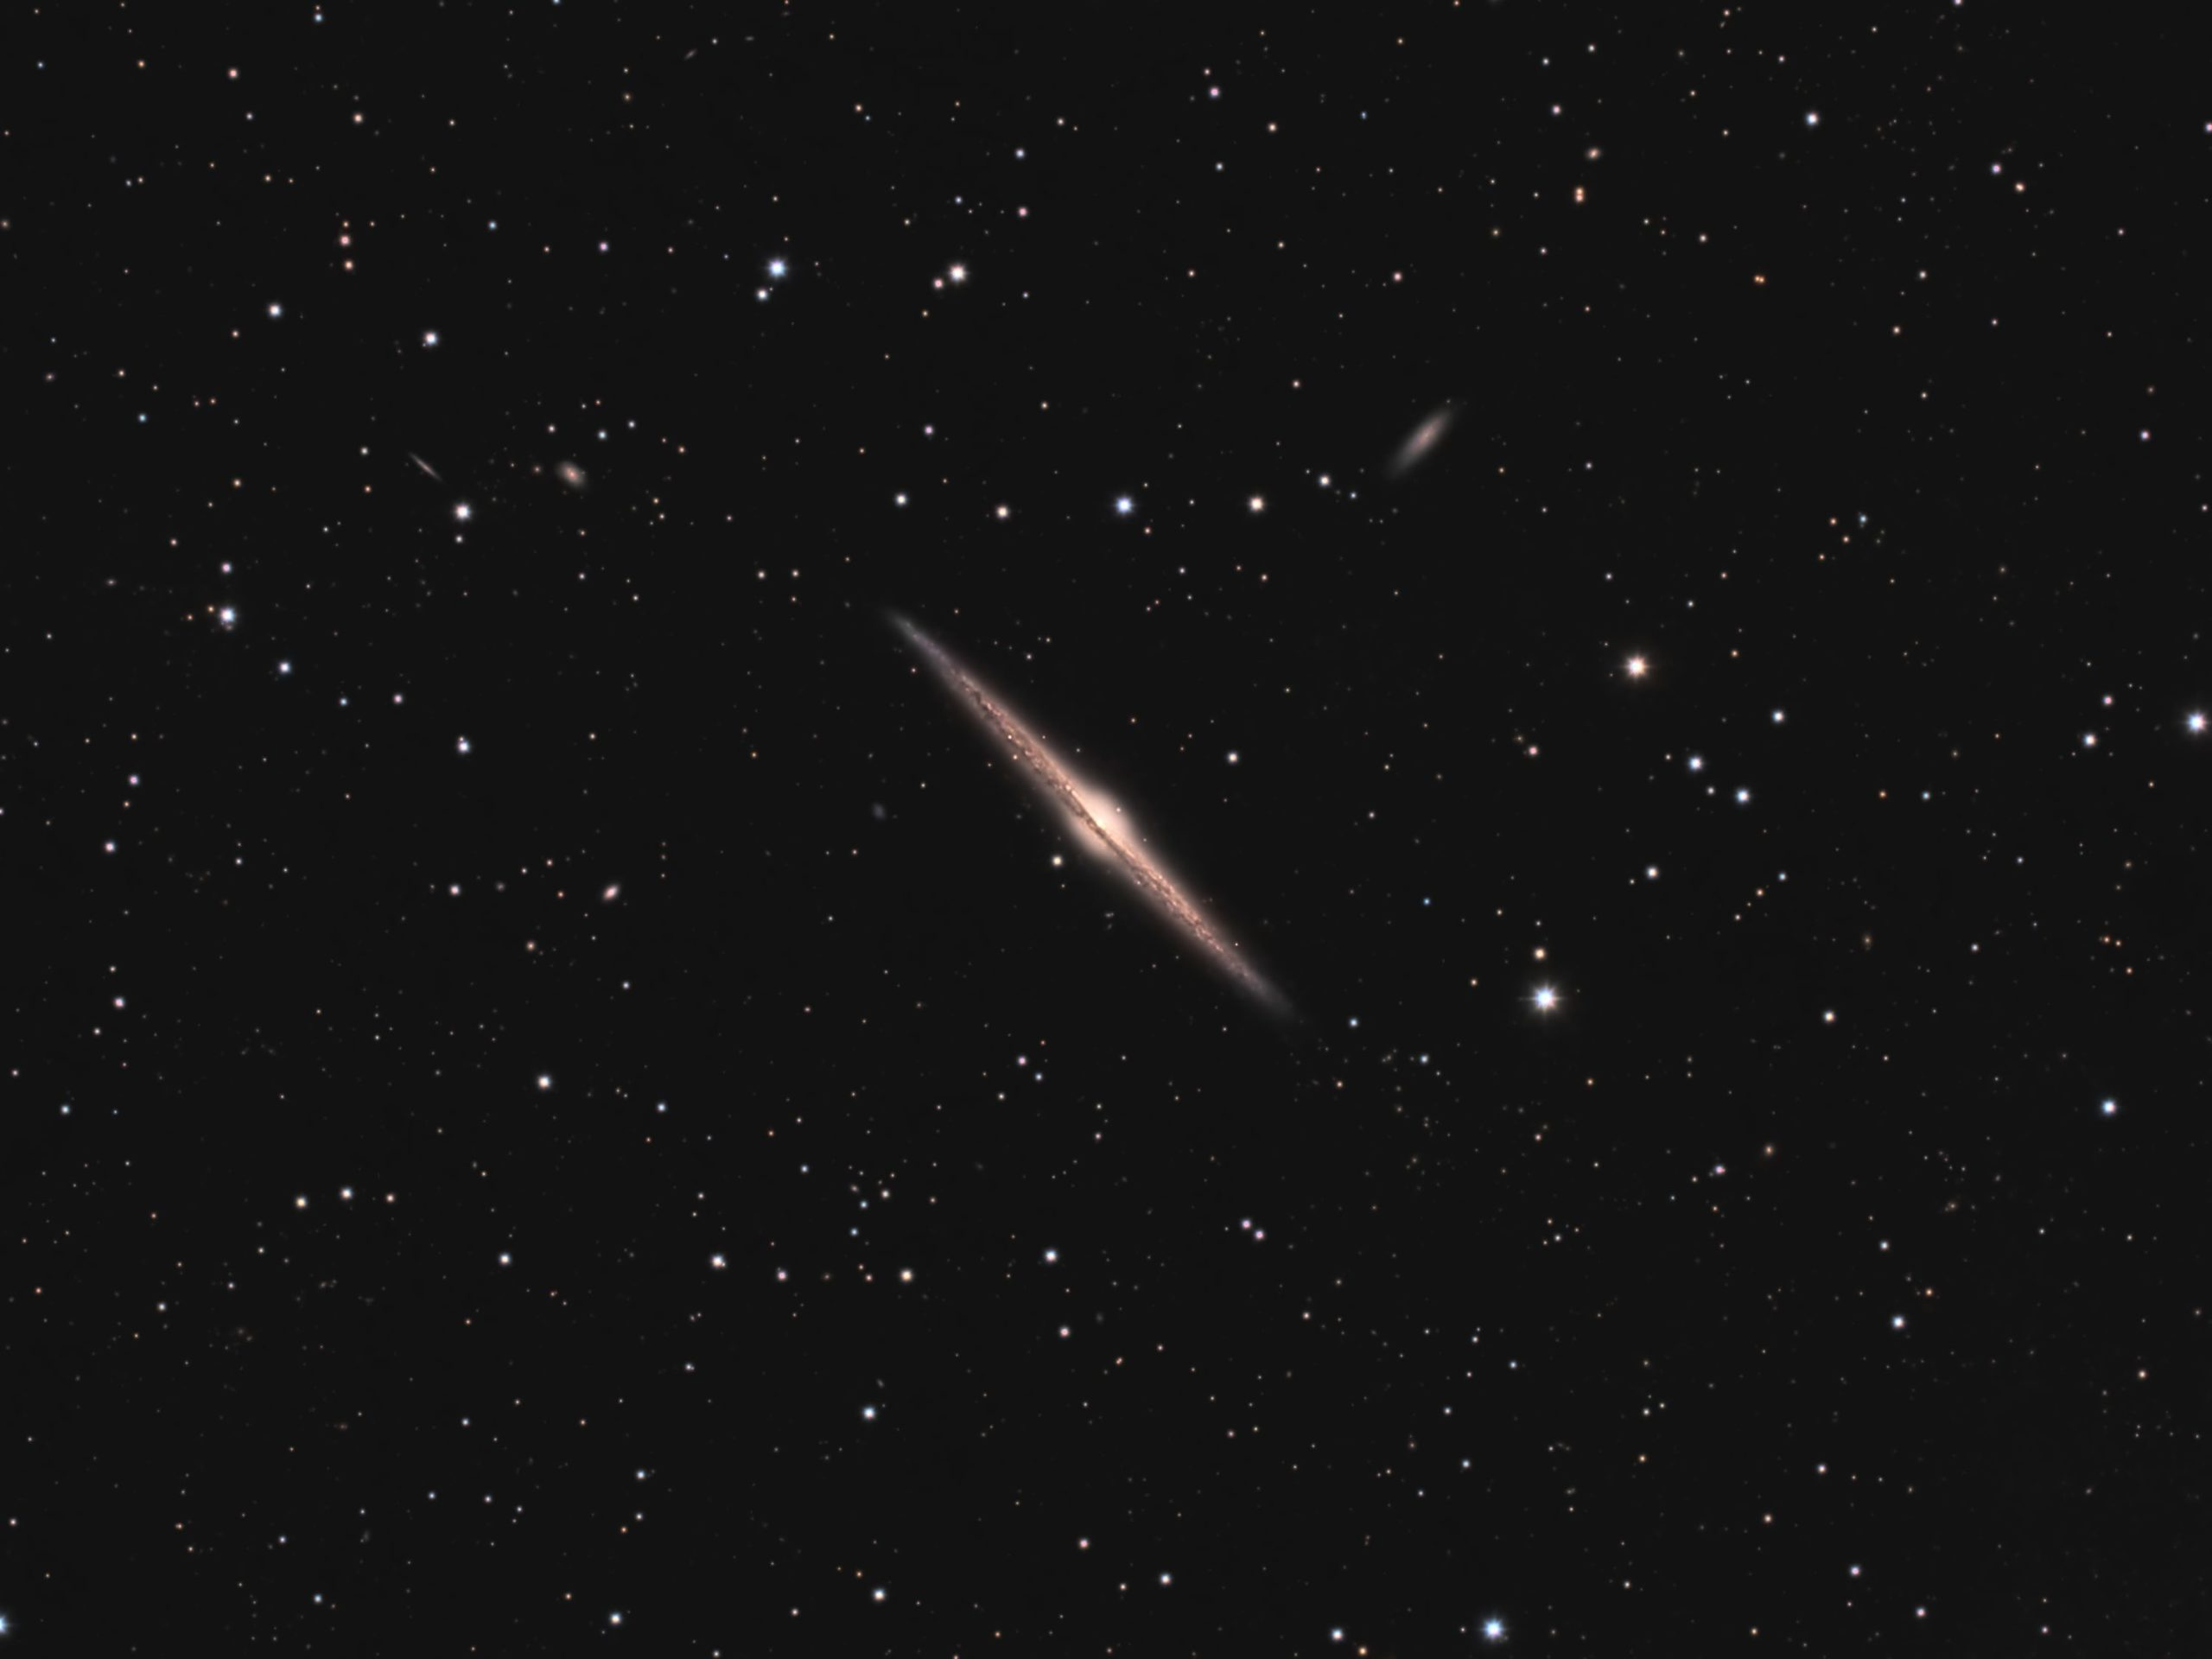 NGC 4565, The Needle Galaxy